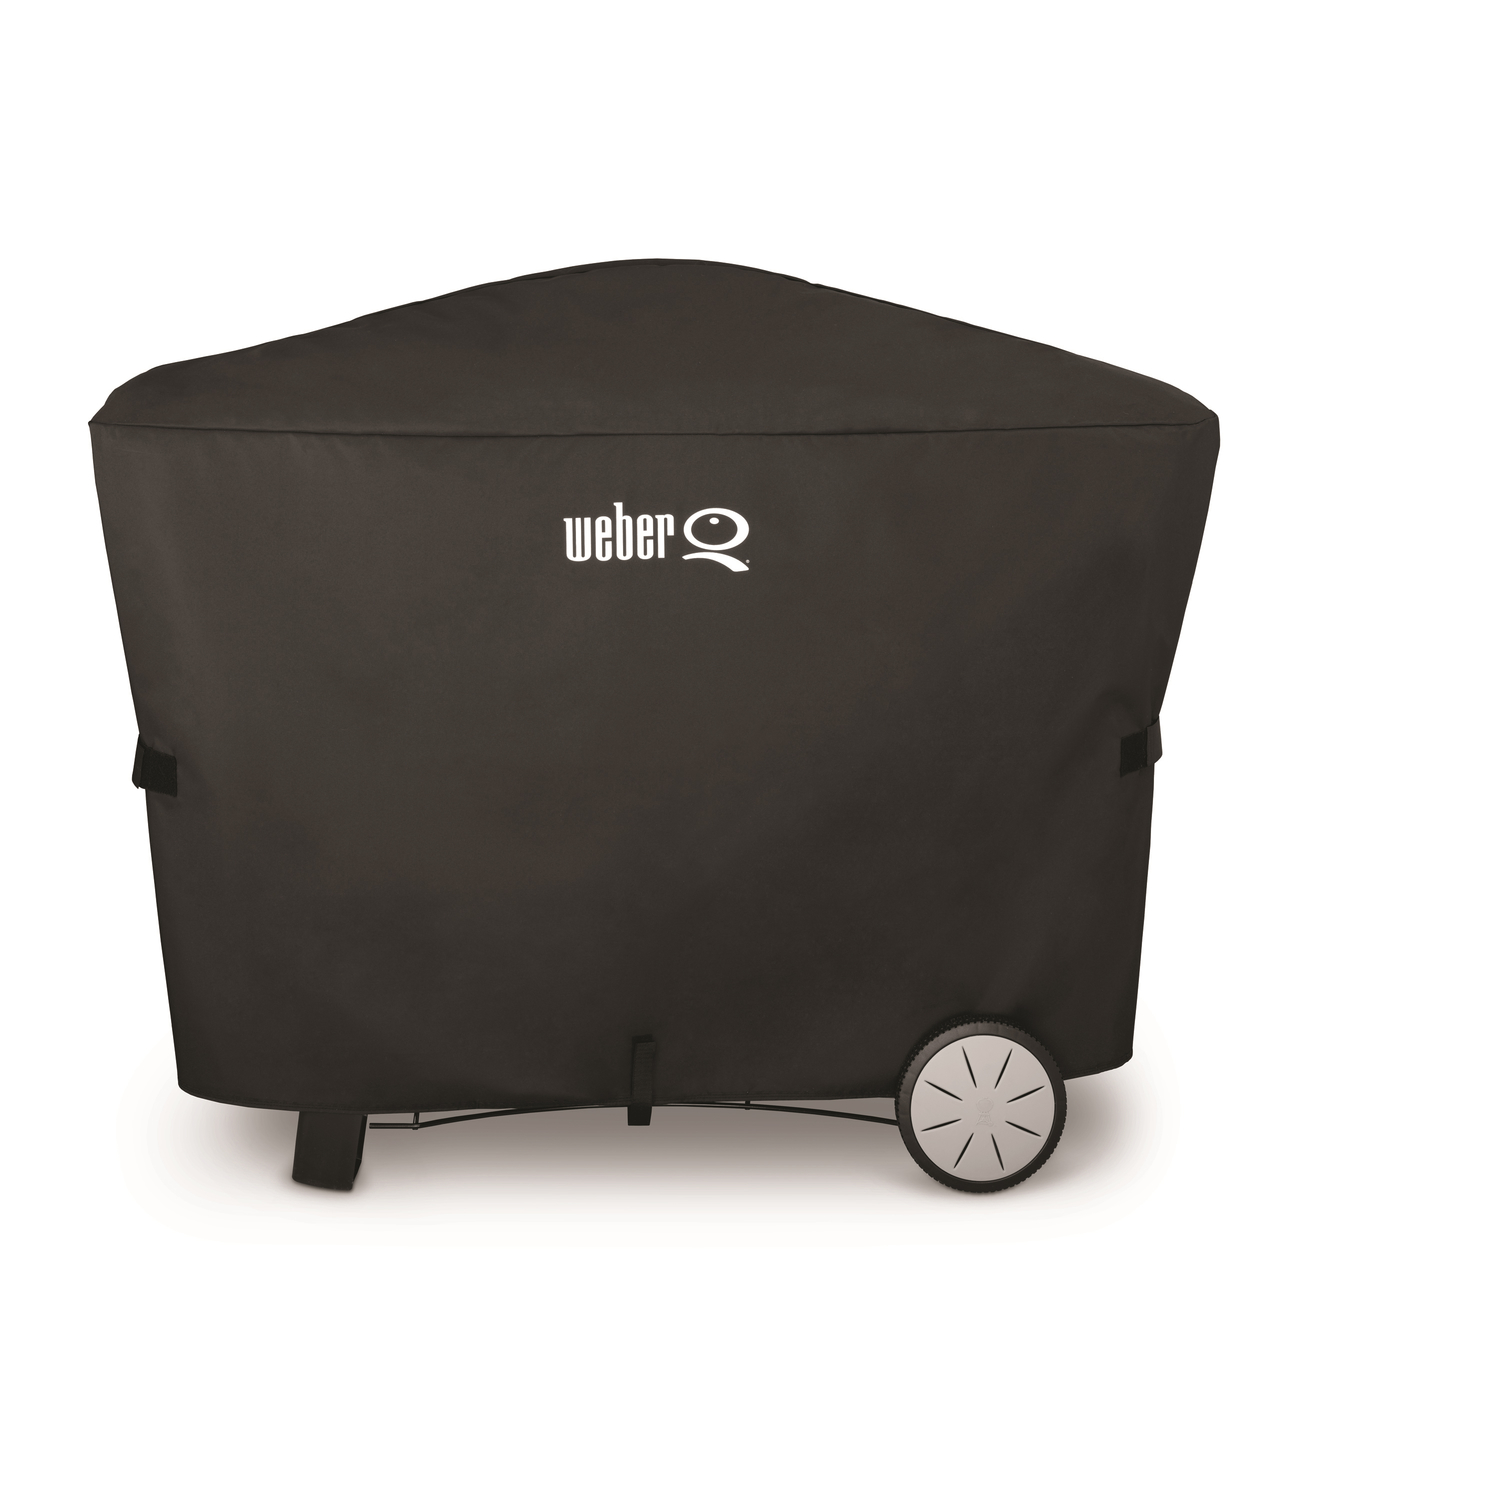 Weber  Black  Grill Cover  56.6 in. W x 22 in. D x 39.3 in. H For Fits Q2000 series with cart and Q3